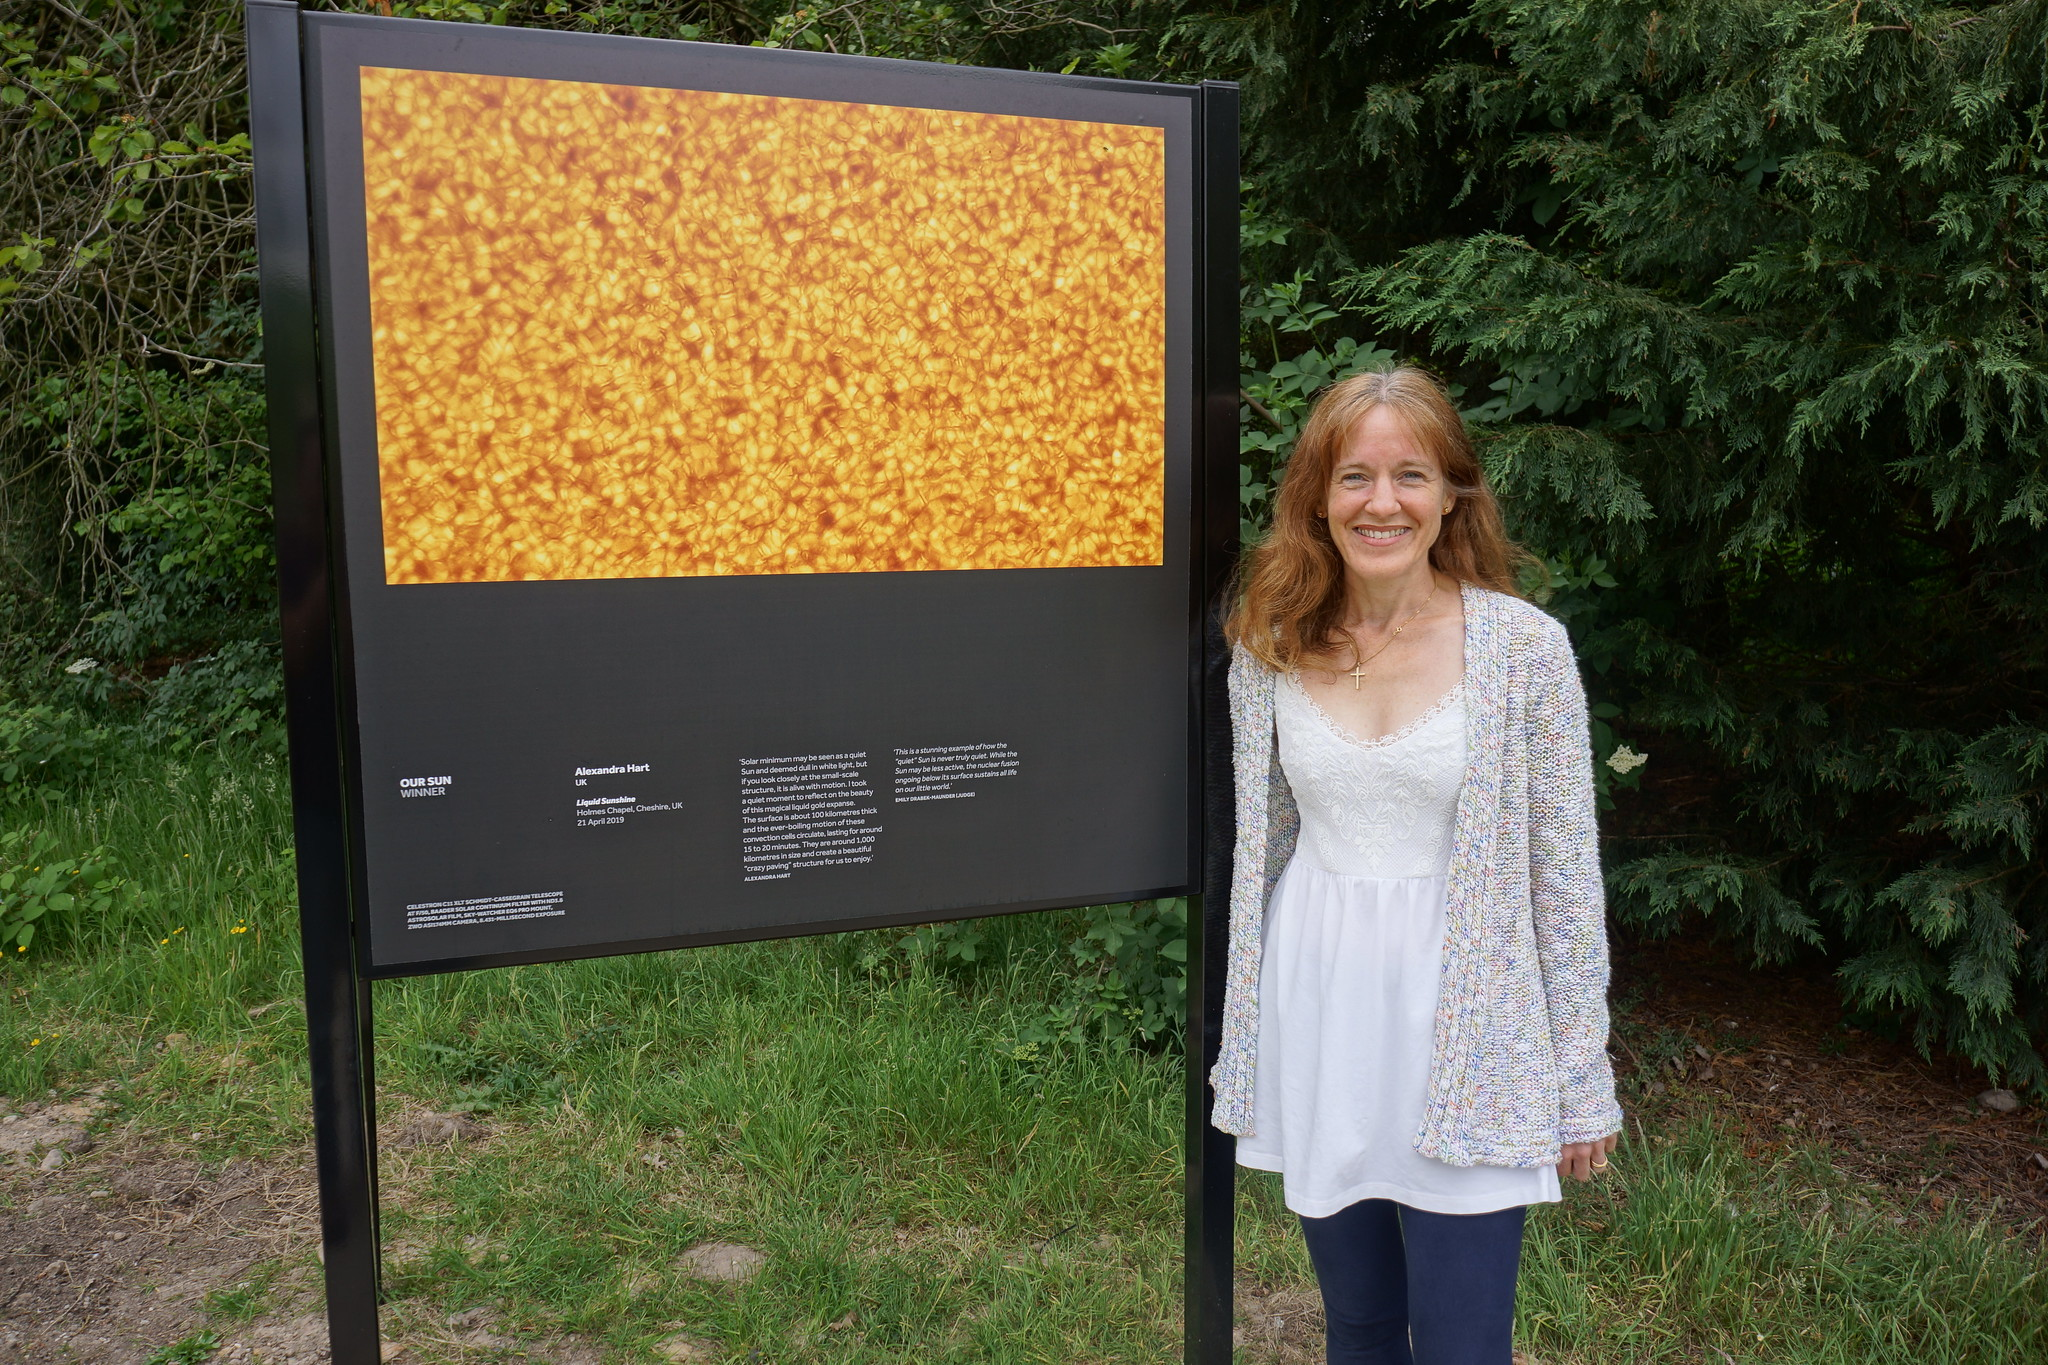 Royal Observatory Greenwichs exhibition: Alexandra Hart with her exhibition image at Jodrell Bank.